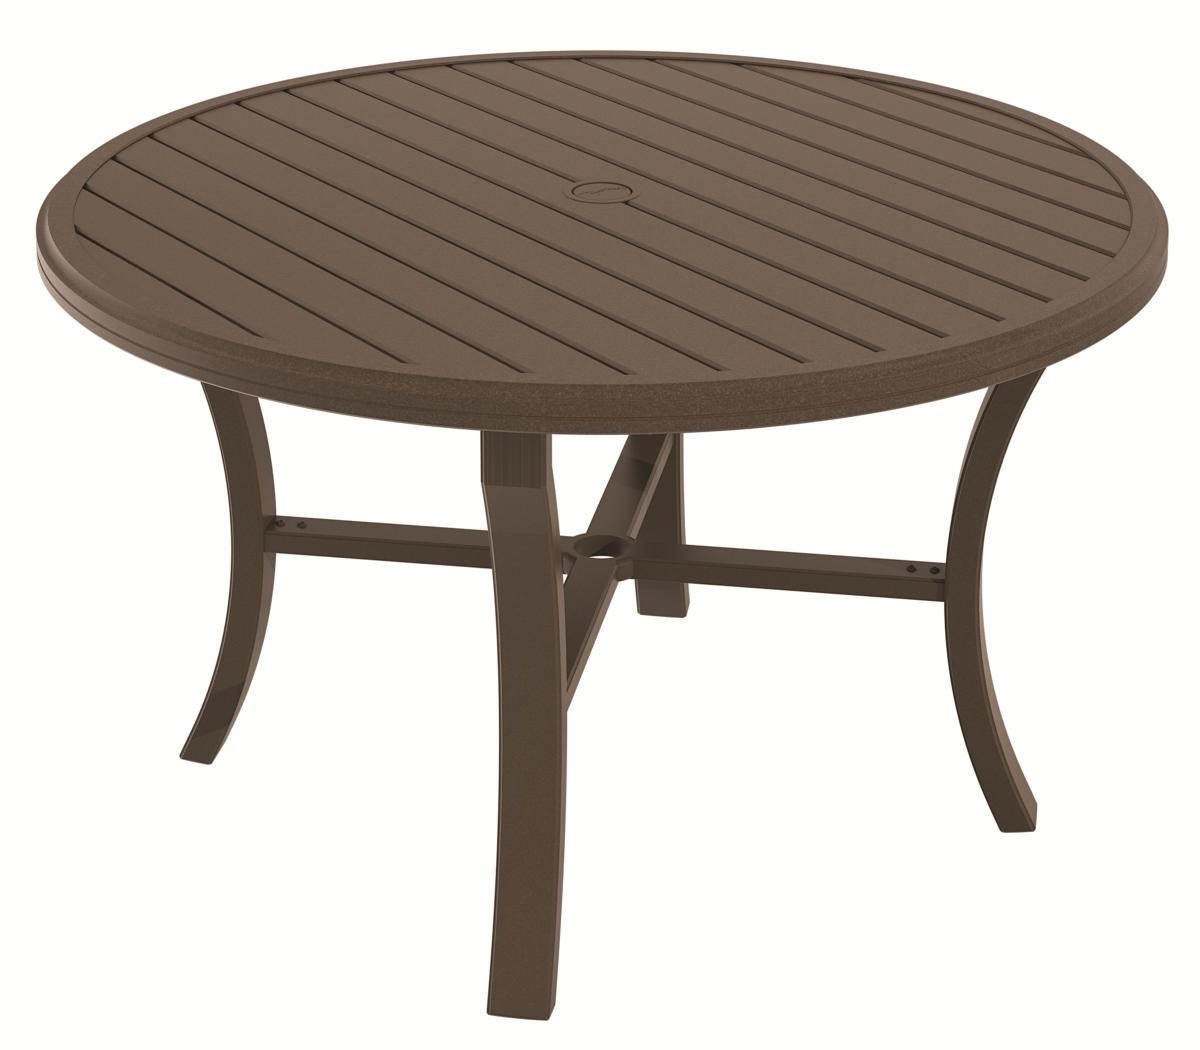 Outdoor Tables 401148U Outdoor Aluminum Table With Round Slatted Top By  Tropitone